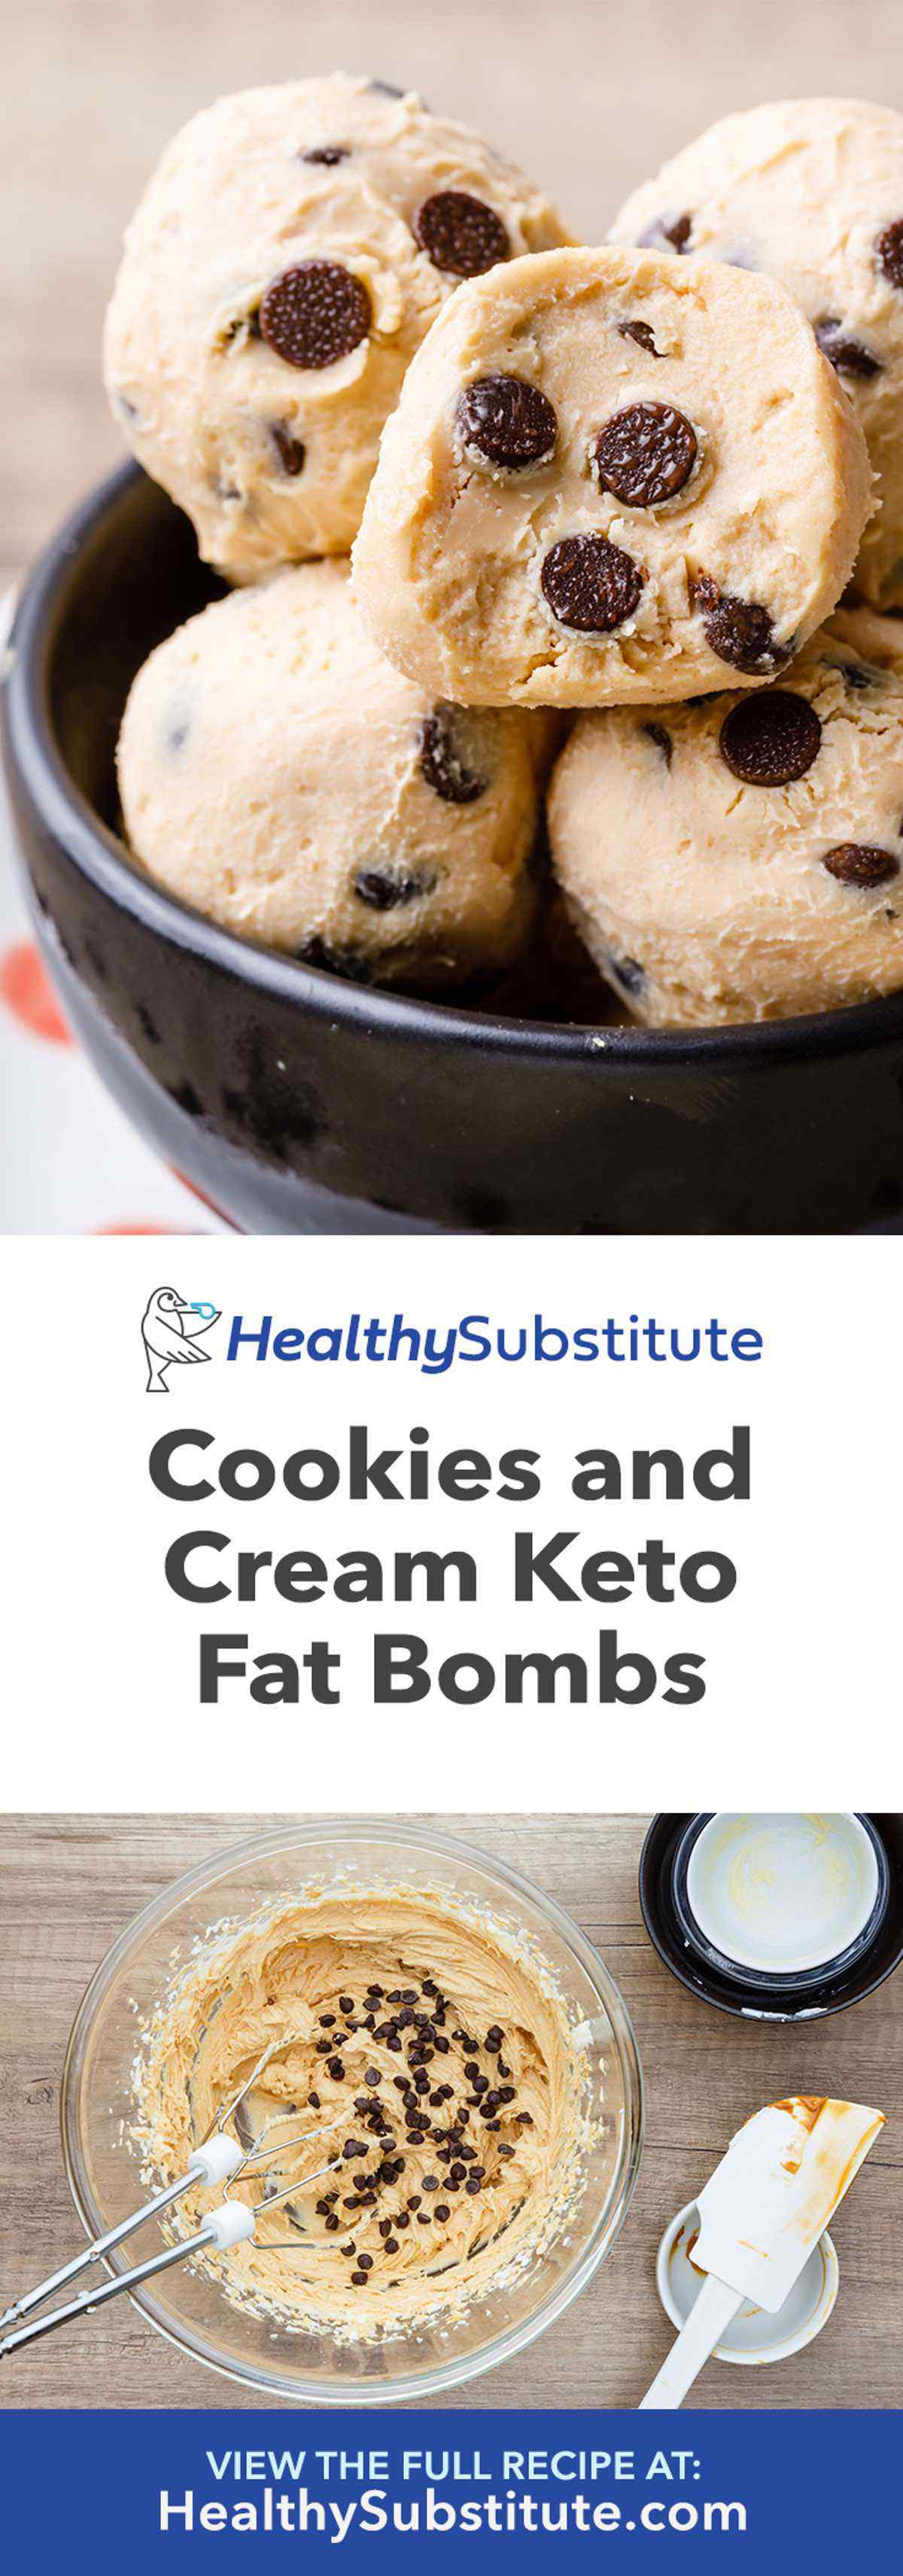 Cookies and Cream Keto Fat Bombs